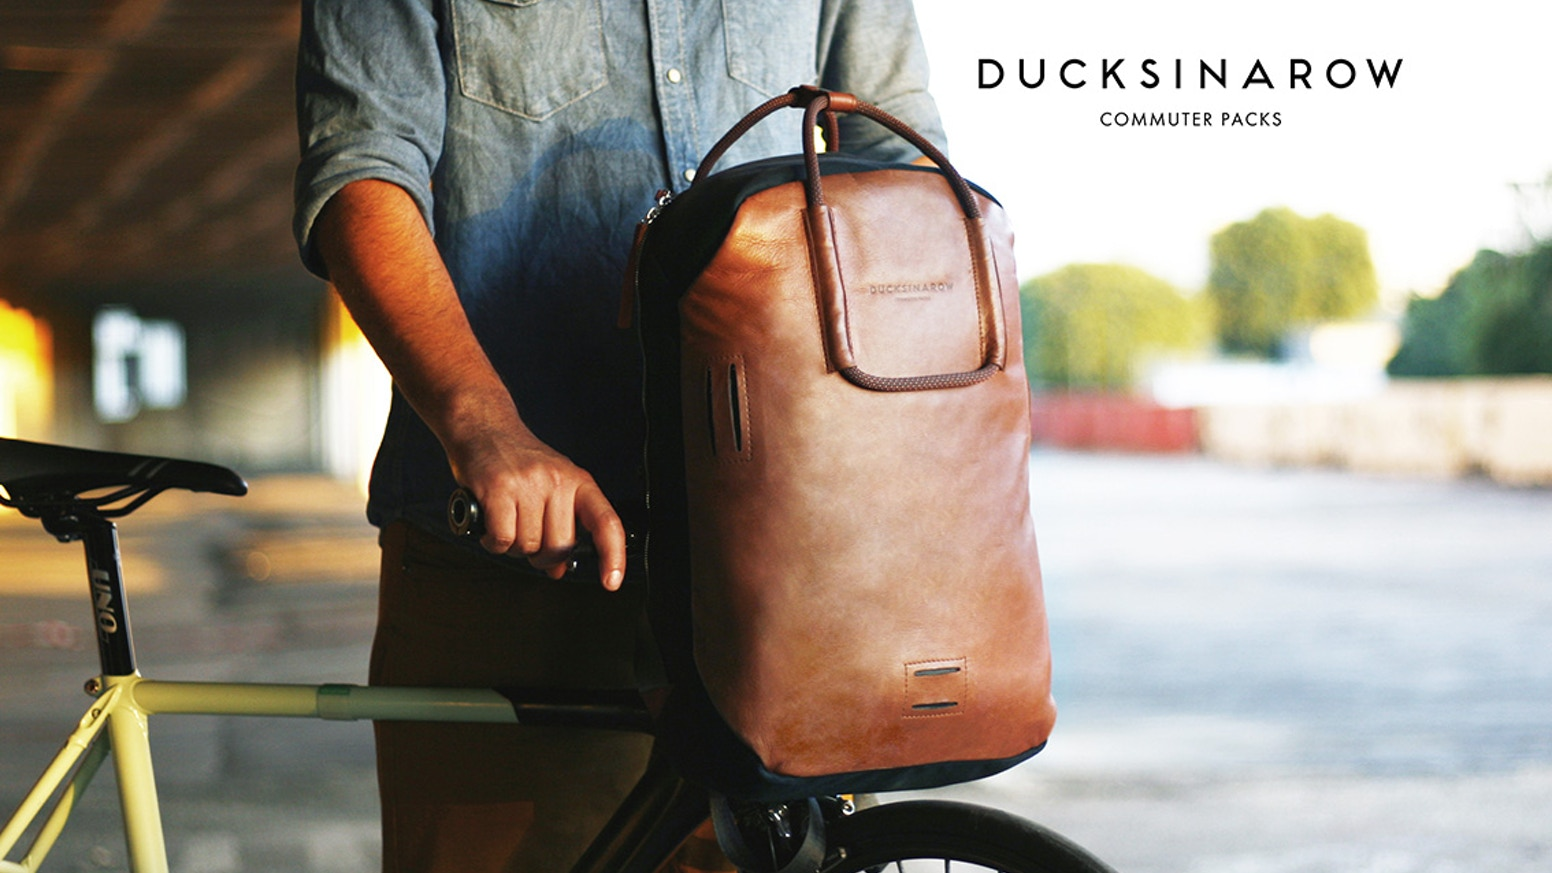 Urban cycling commuters bag w/ Multiple Features that fits perfectly to your handlebar.